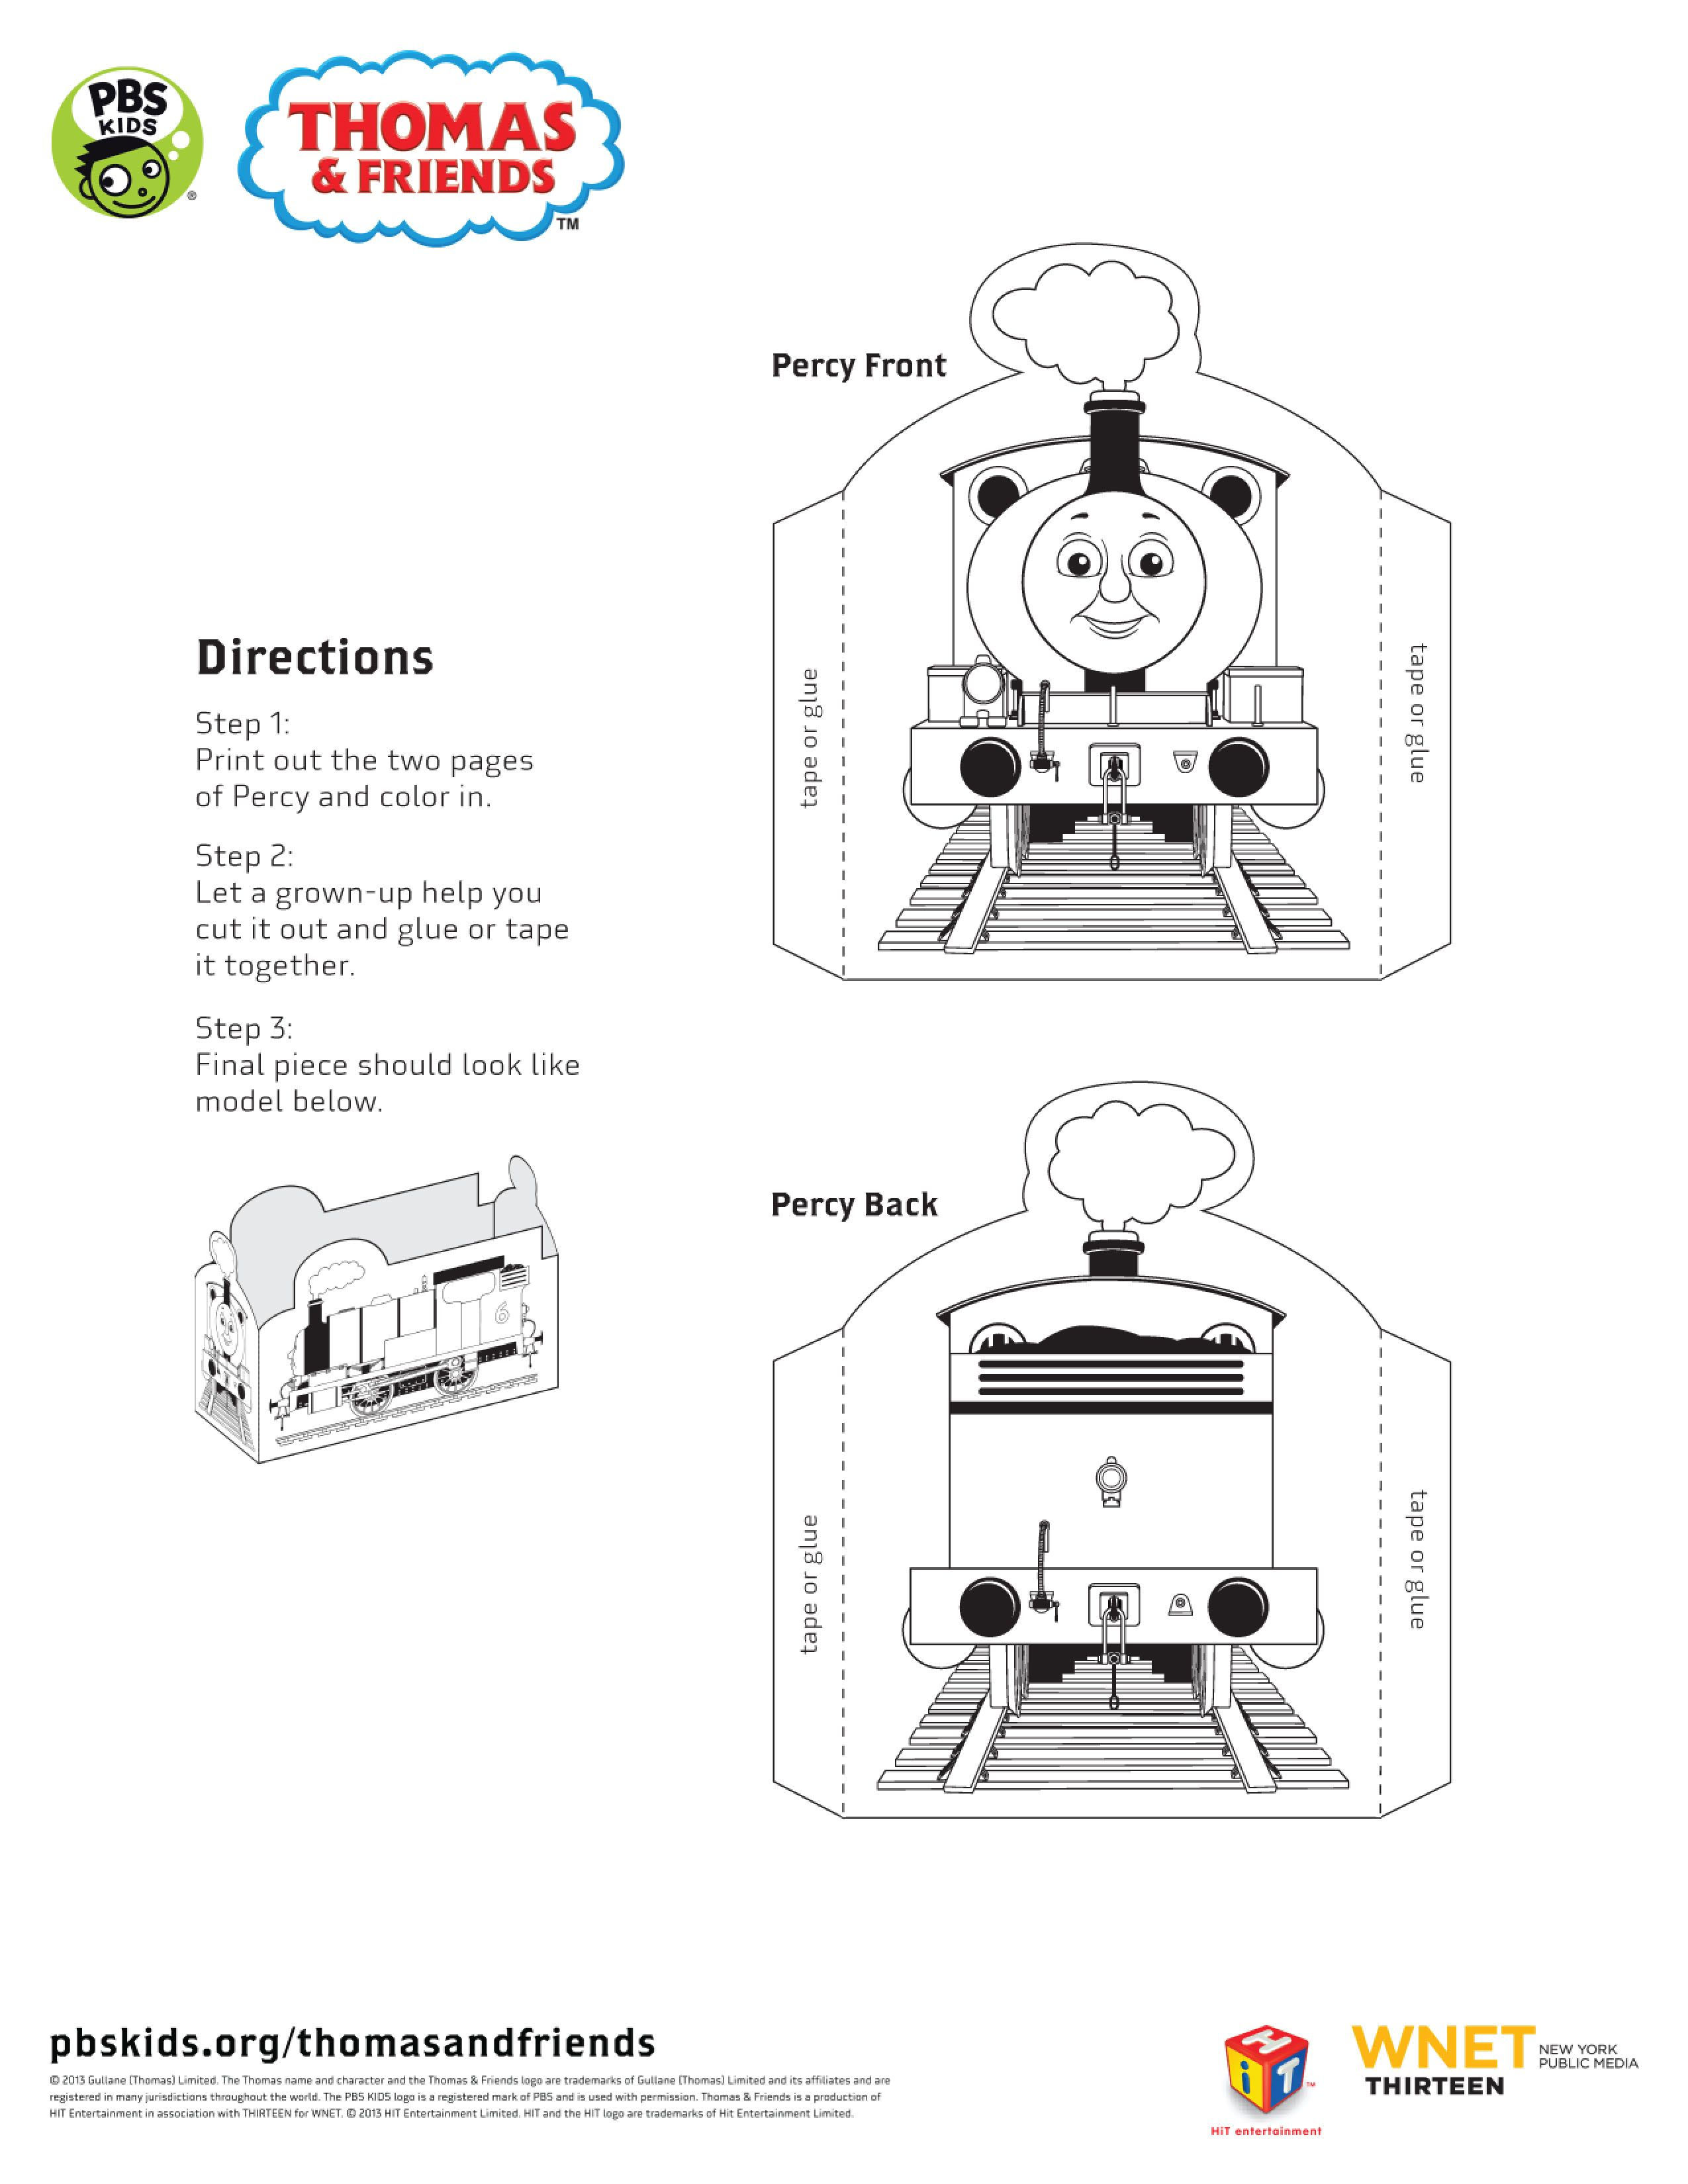 Front And Back Of A Percy Cut Out Standee Thomasandfriends Pbskids